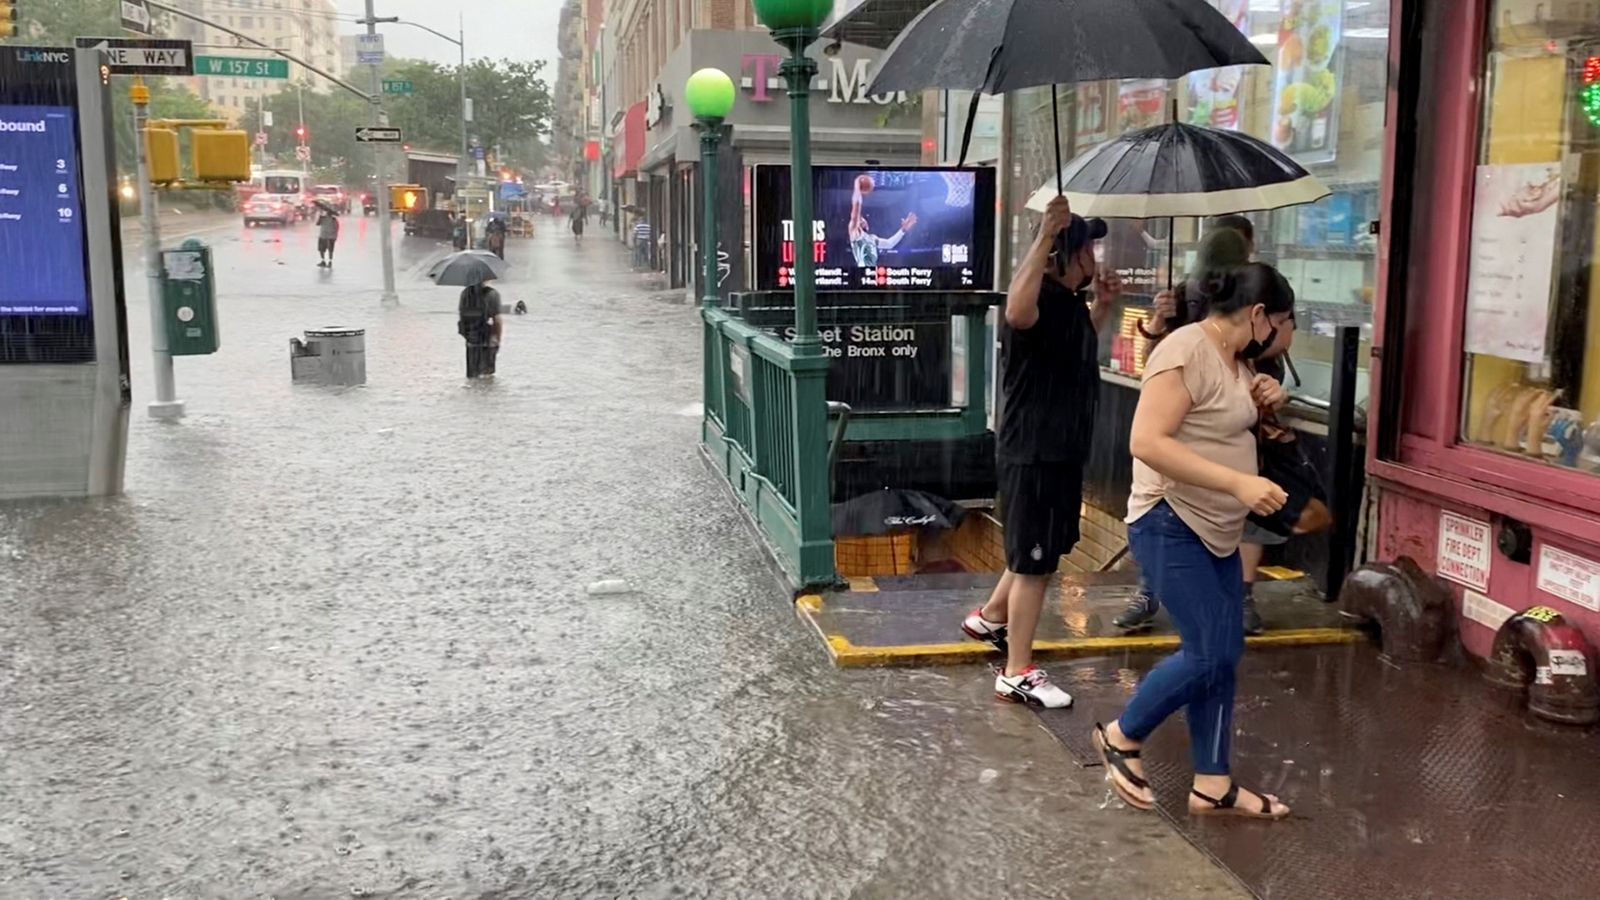 A person wades through the flood water near the 157th St. metro station in New York